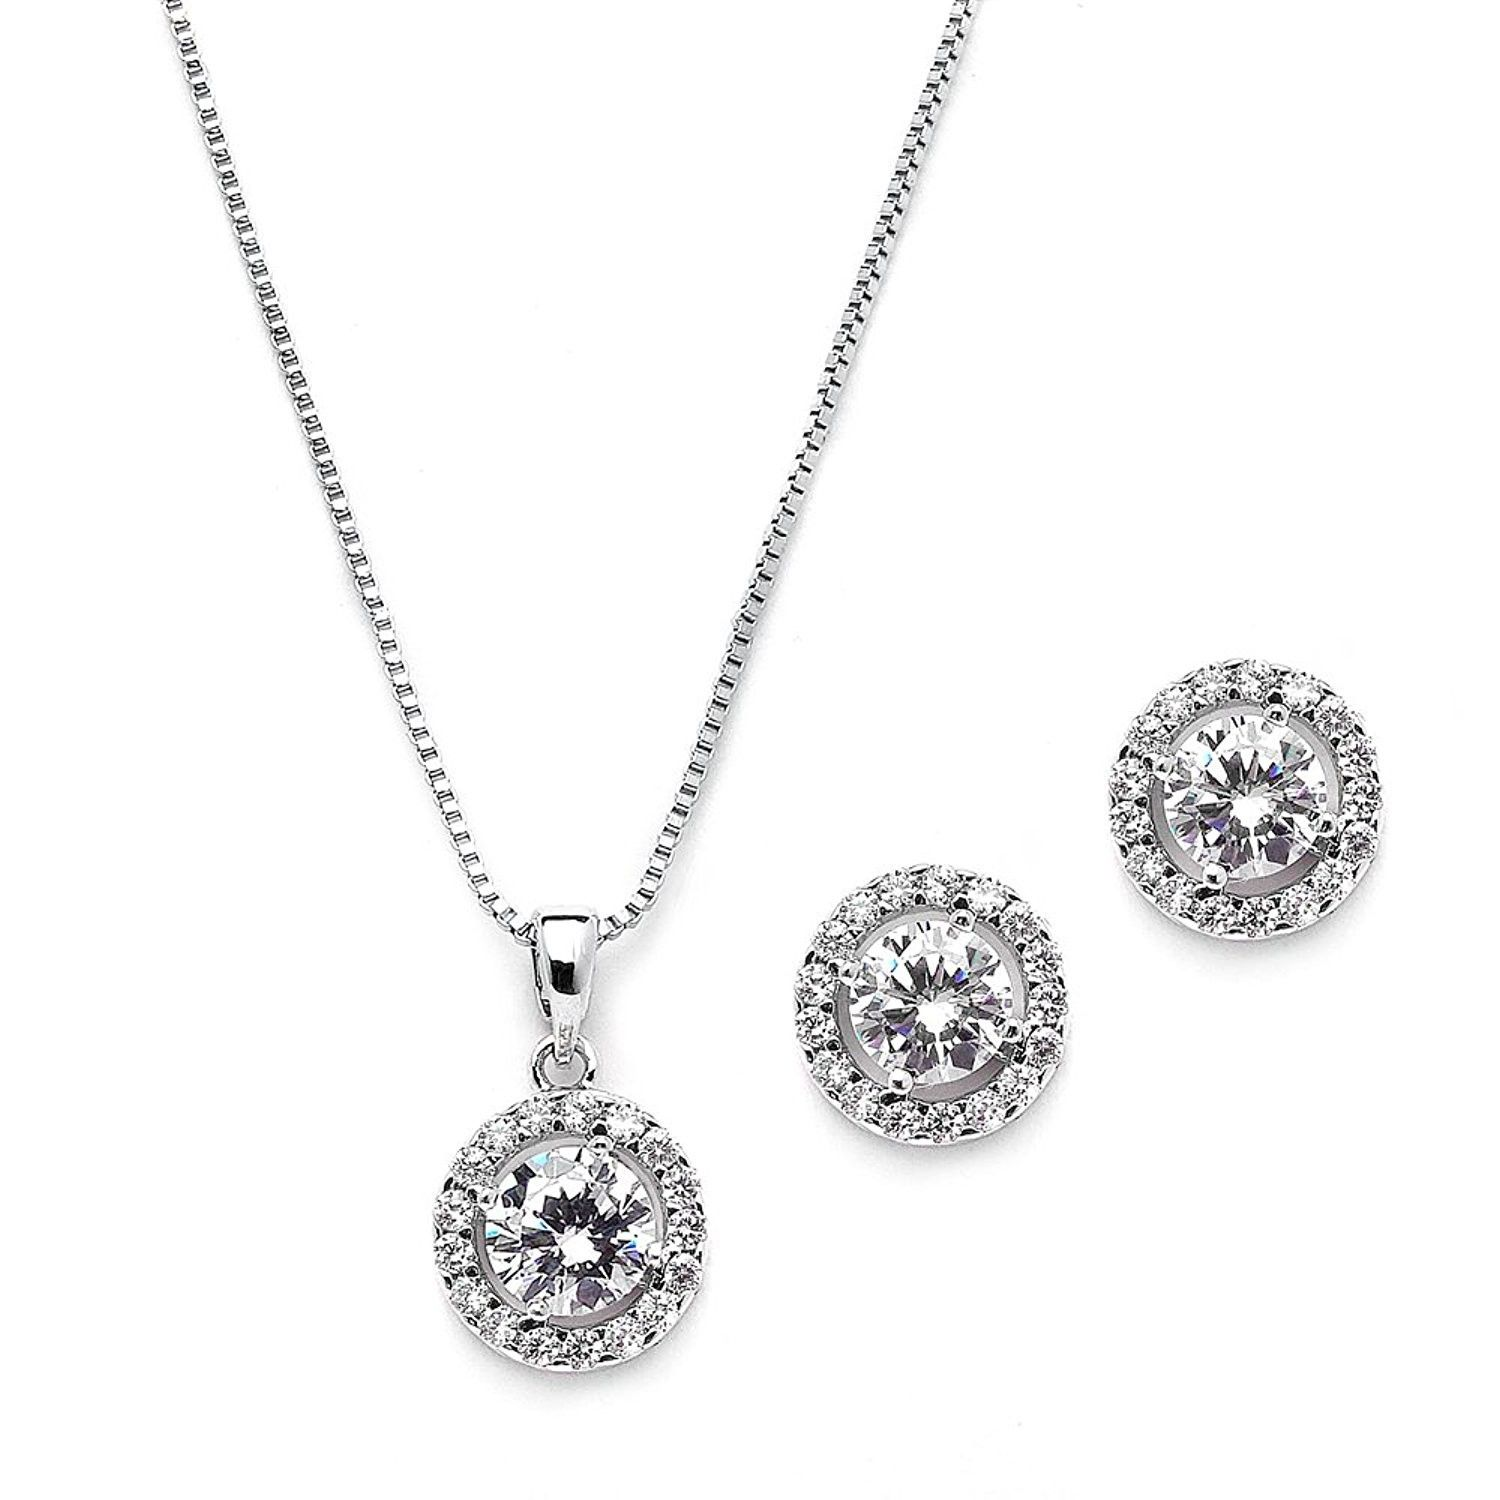 af2ddd3c3 Jewelry Sets, Ultra Dainty 10.5mm Cubic Zirconia Round Halo Necklace and  Stud Earrings Set Plated in Platinum - CC12JGUEZ1V #JewelrySets  #designerjewelry ...